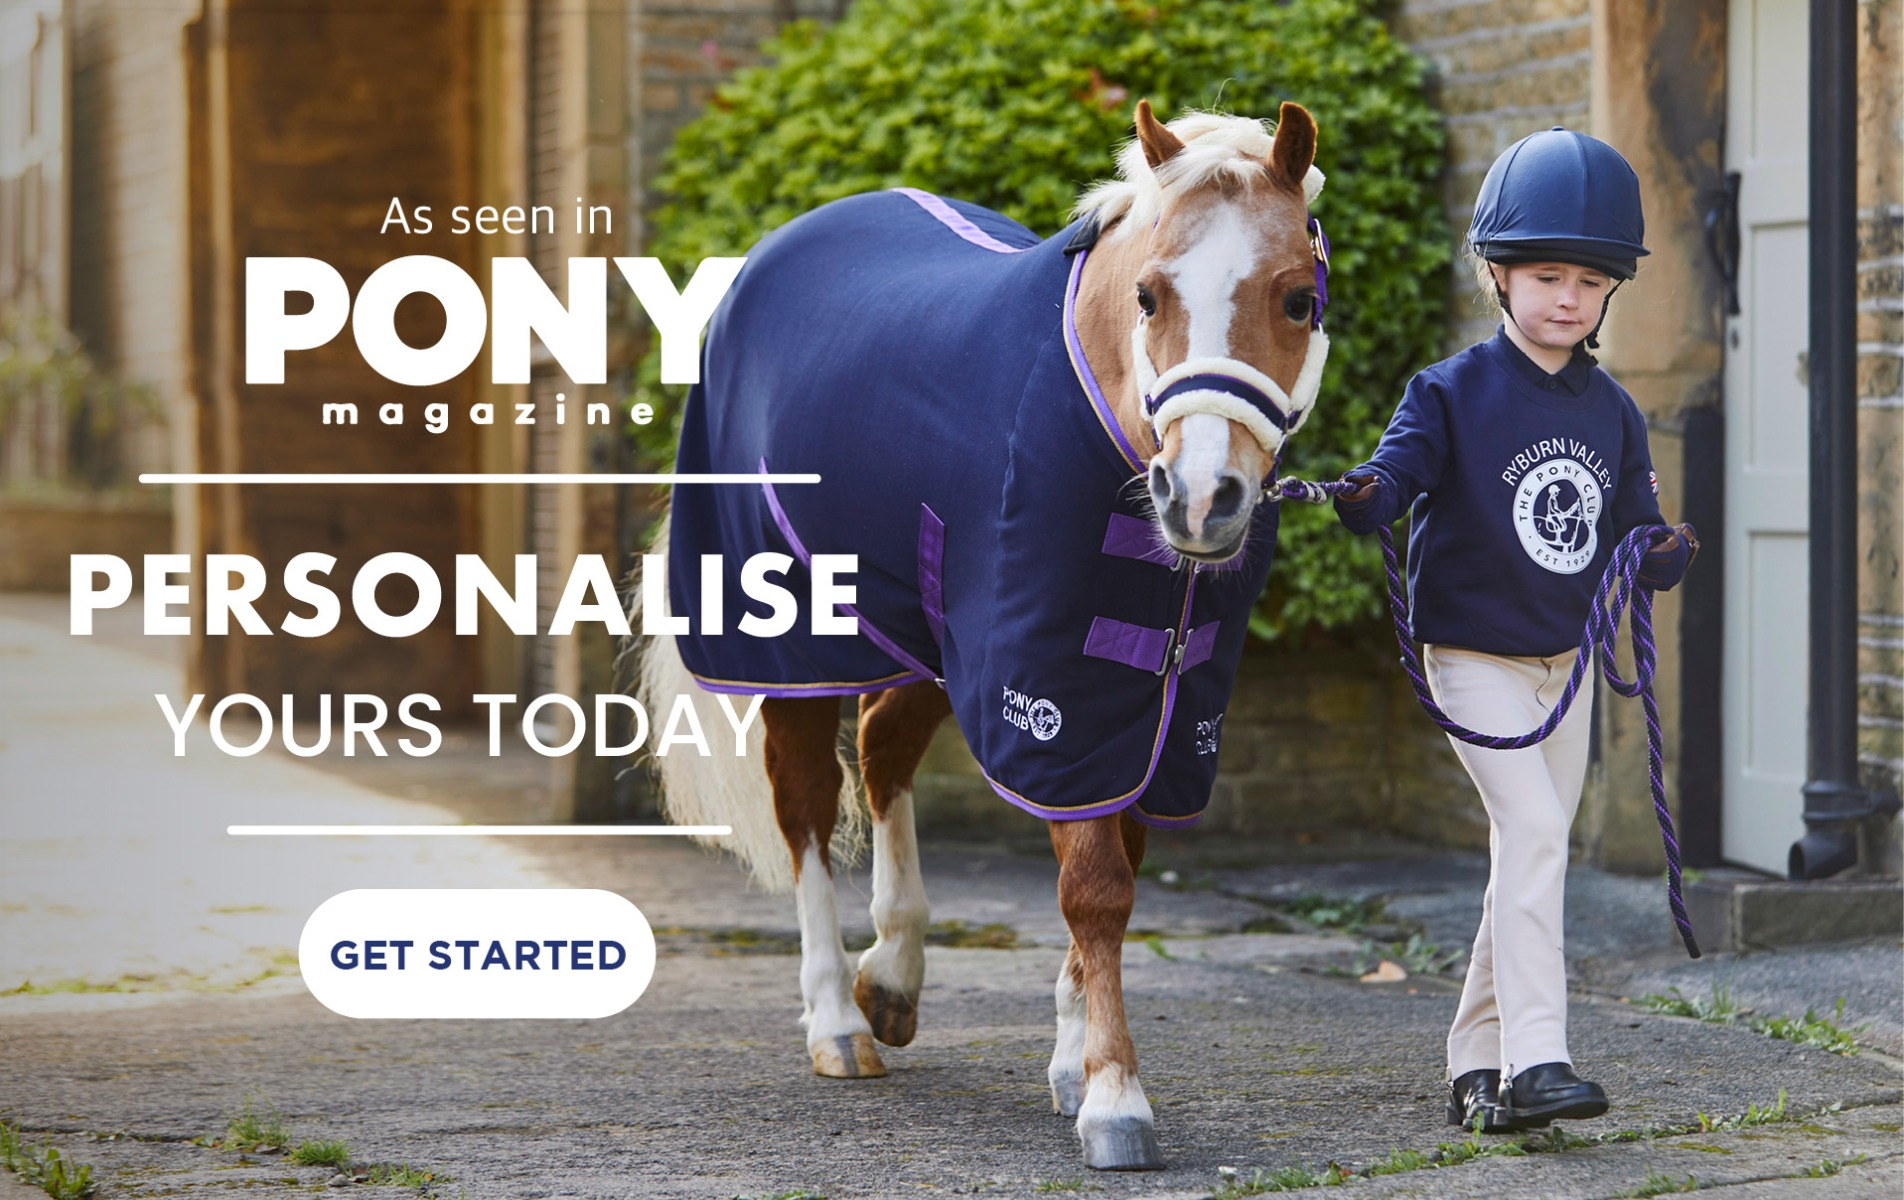 Pony Club - Personalise yours today | Harry Hall